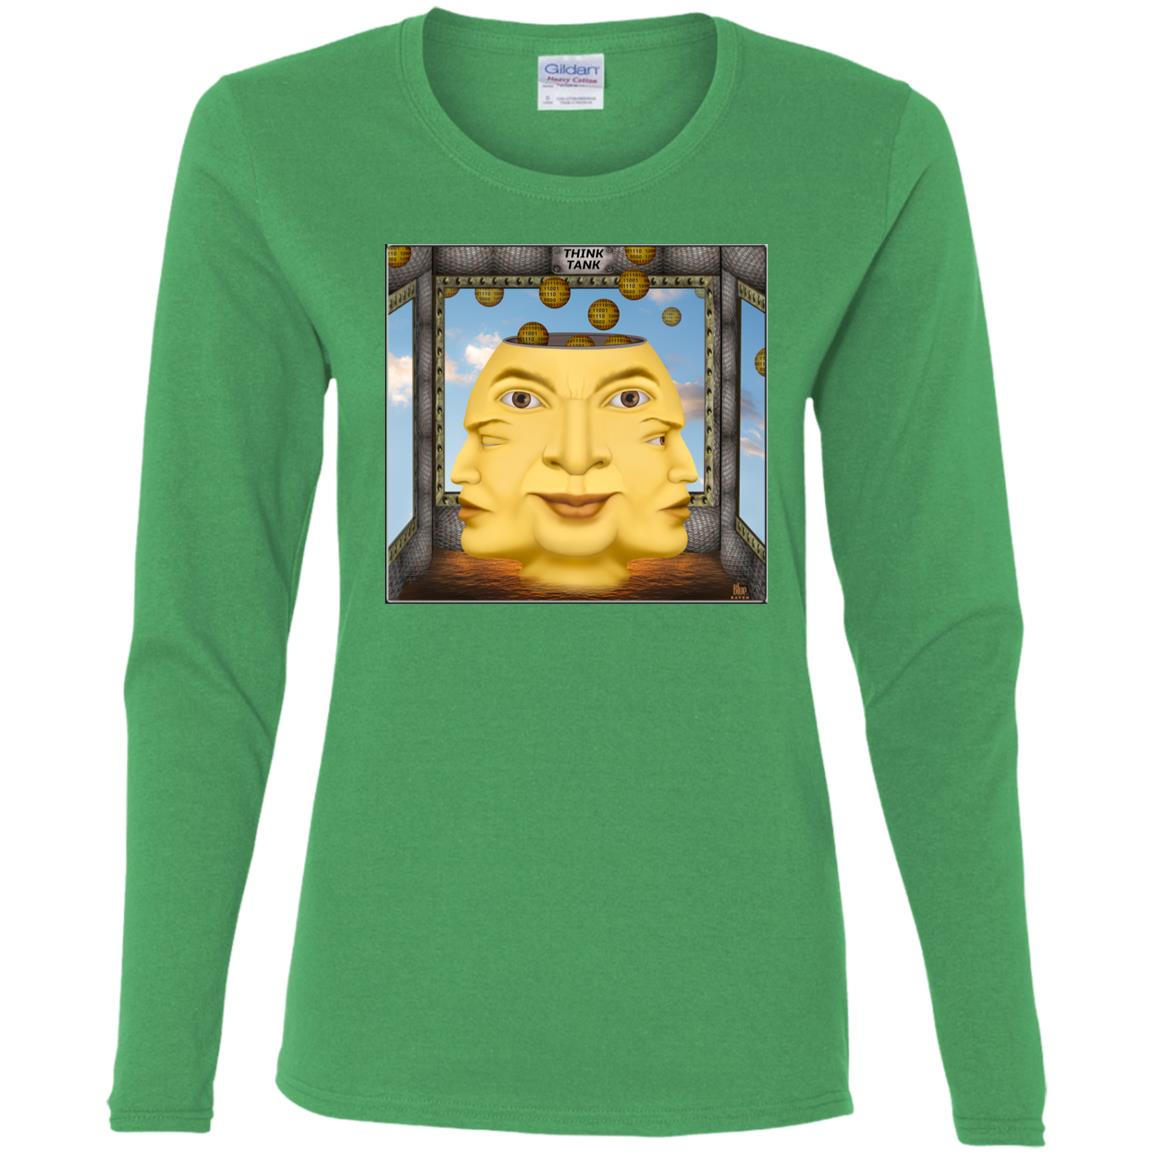 Think Tank - Women's Long Sleeve Tee